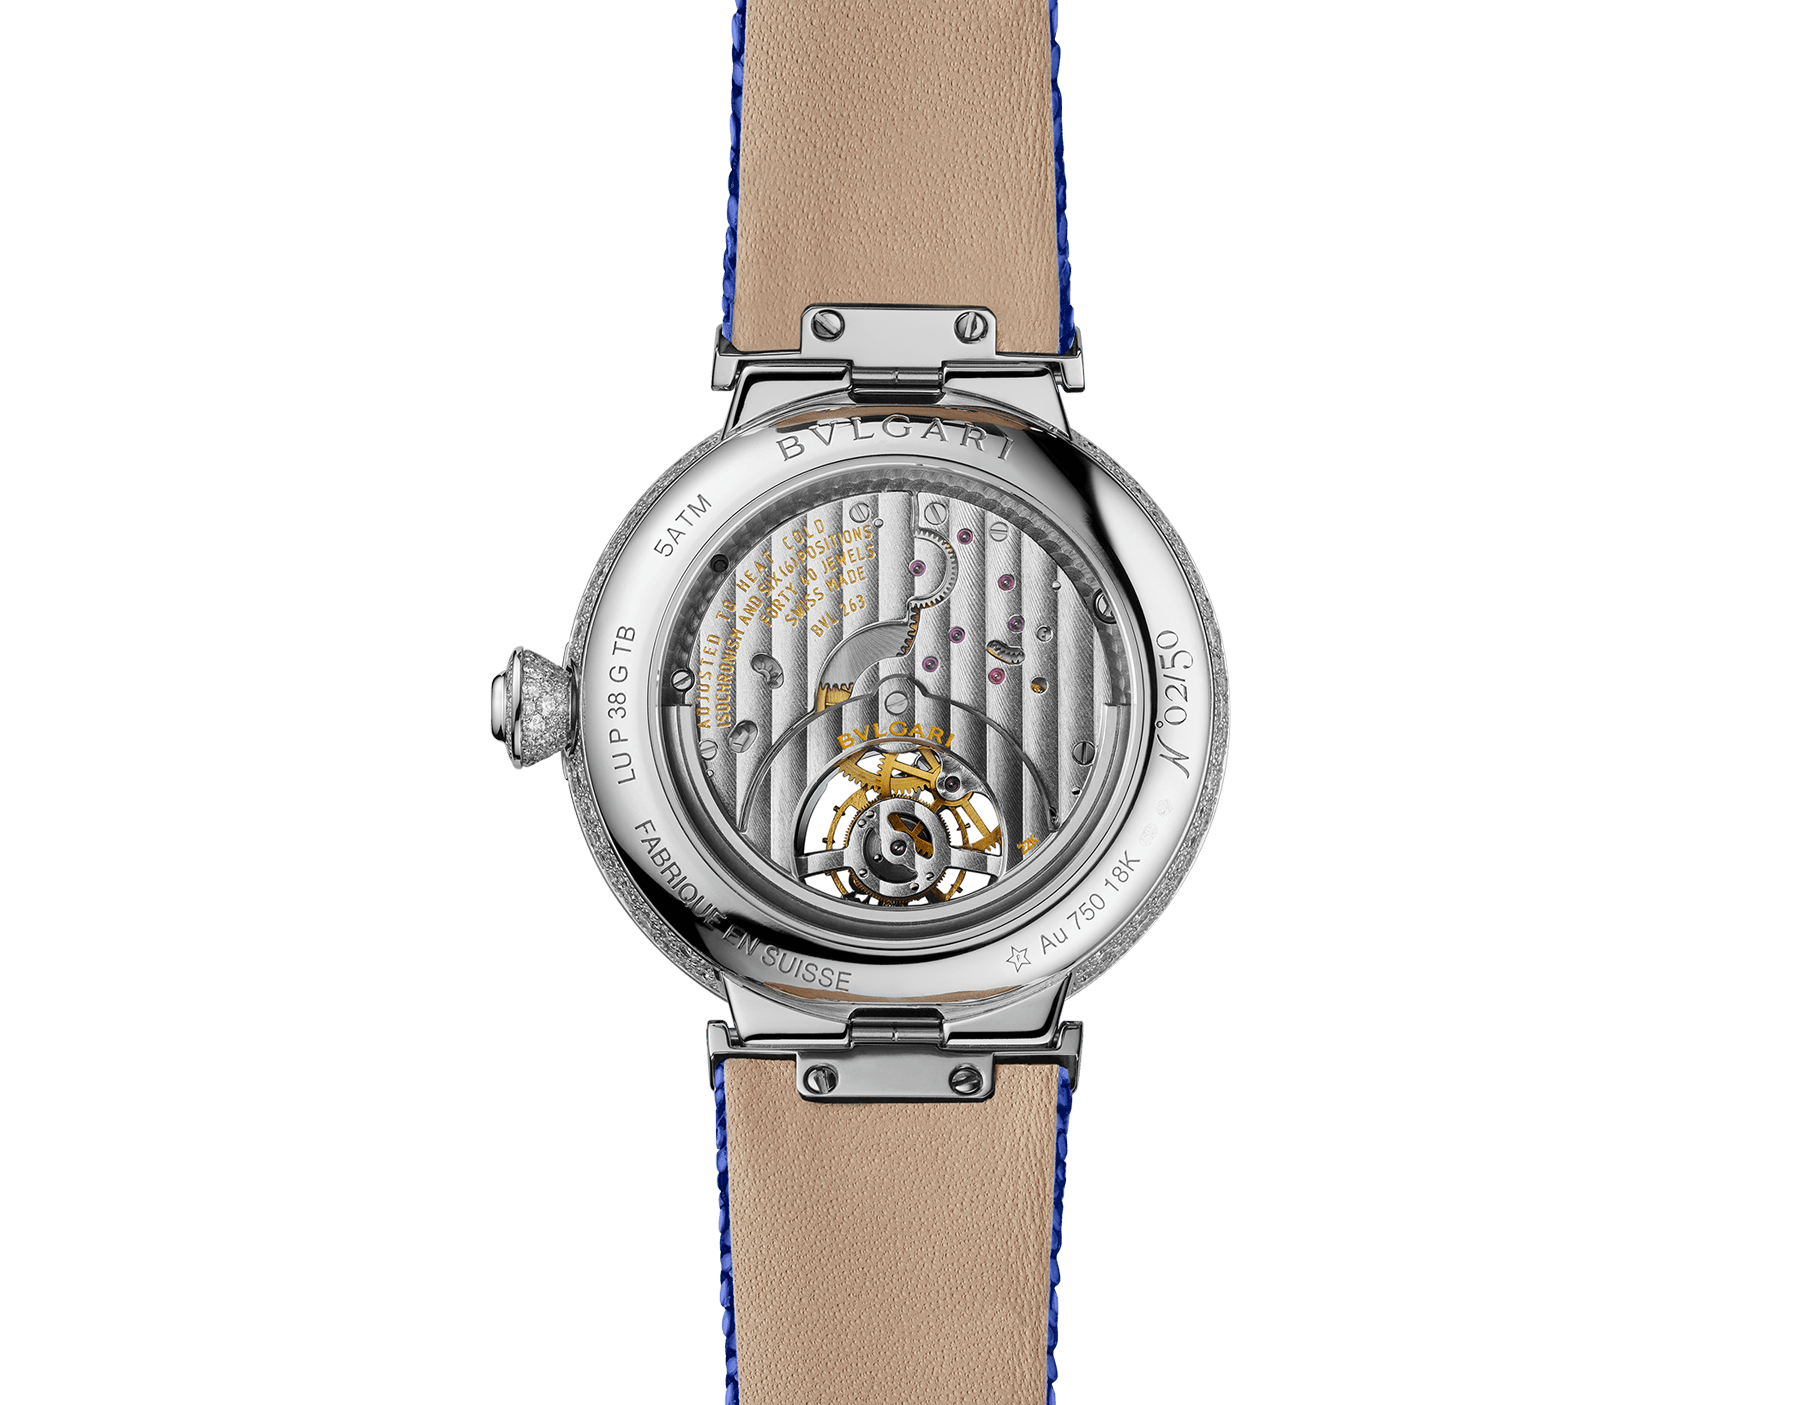 LVCEA Tourbillon Limited Edition watch with mechanical manufacture movement, automatic winding, see-through tourbillon, 18 kt white gold case set with round brilliant-cut diamonds, full-pavé dial with round brilliant-cut diamonds and blue colour finish, and blue galuchat bracelet 102881 image 4